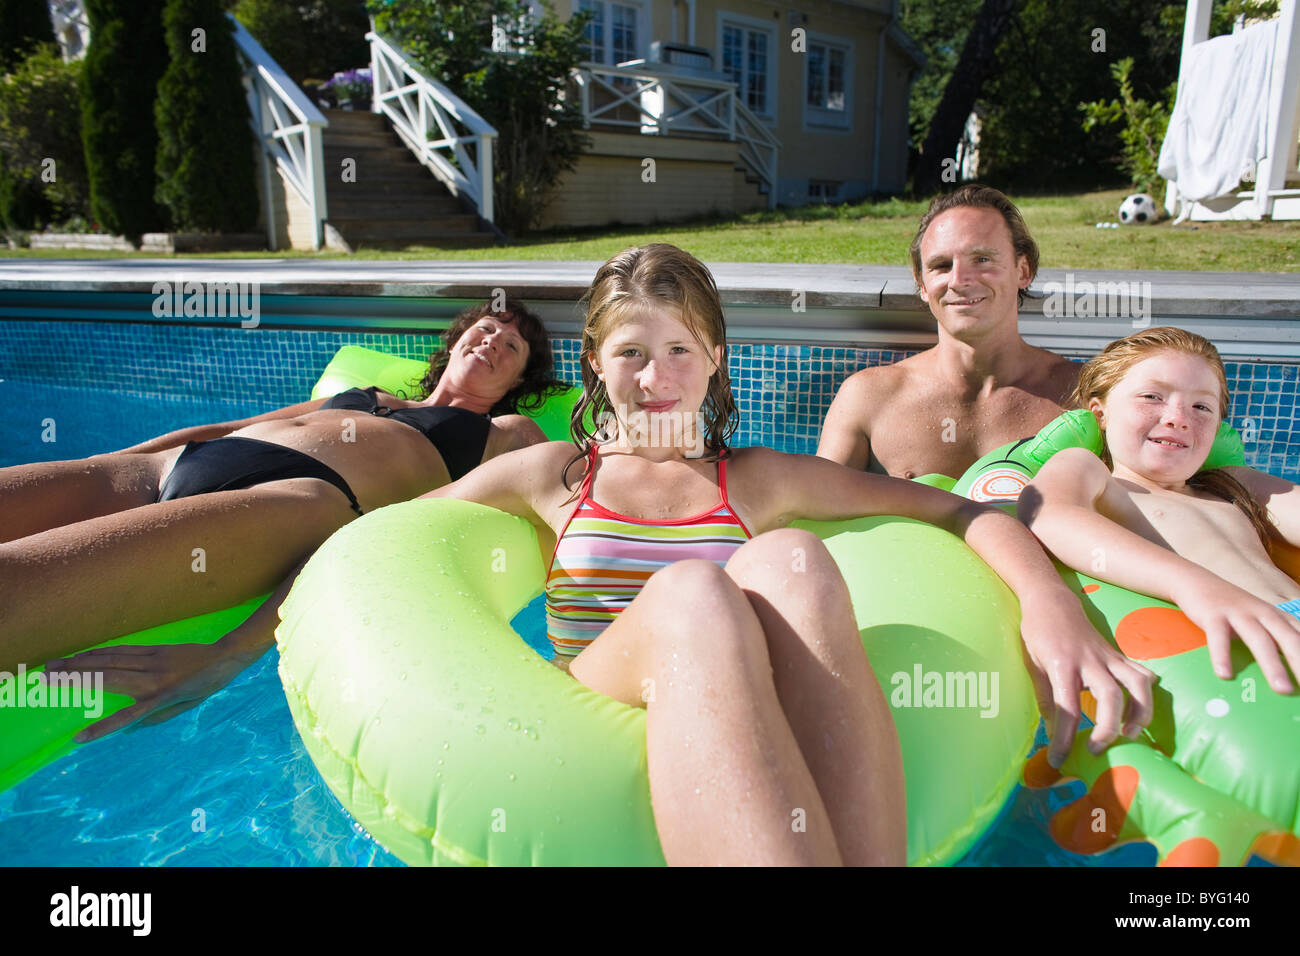 En famille piscine Photo Stock